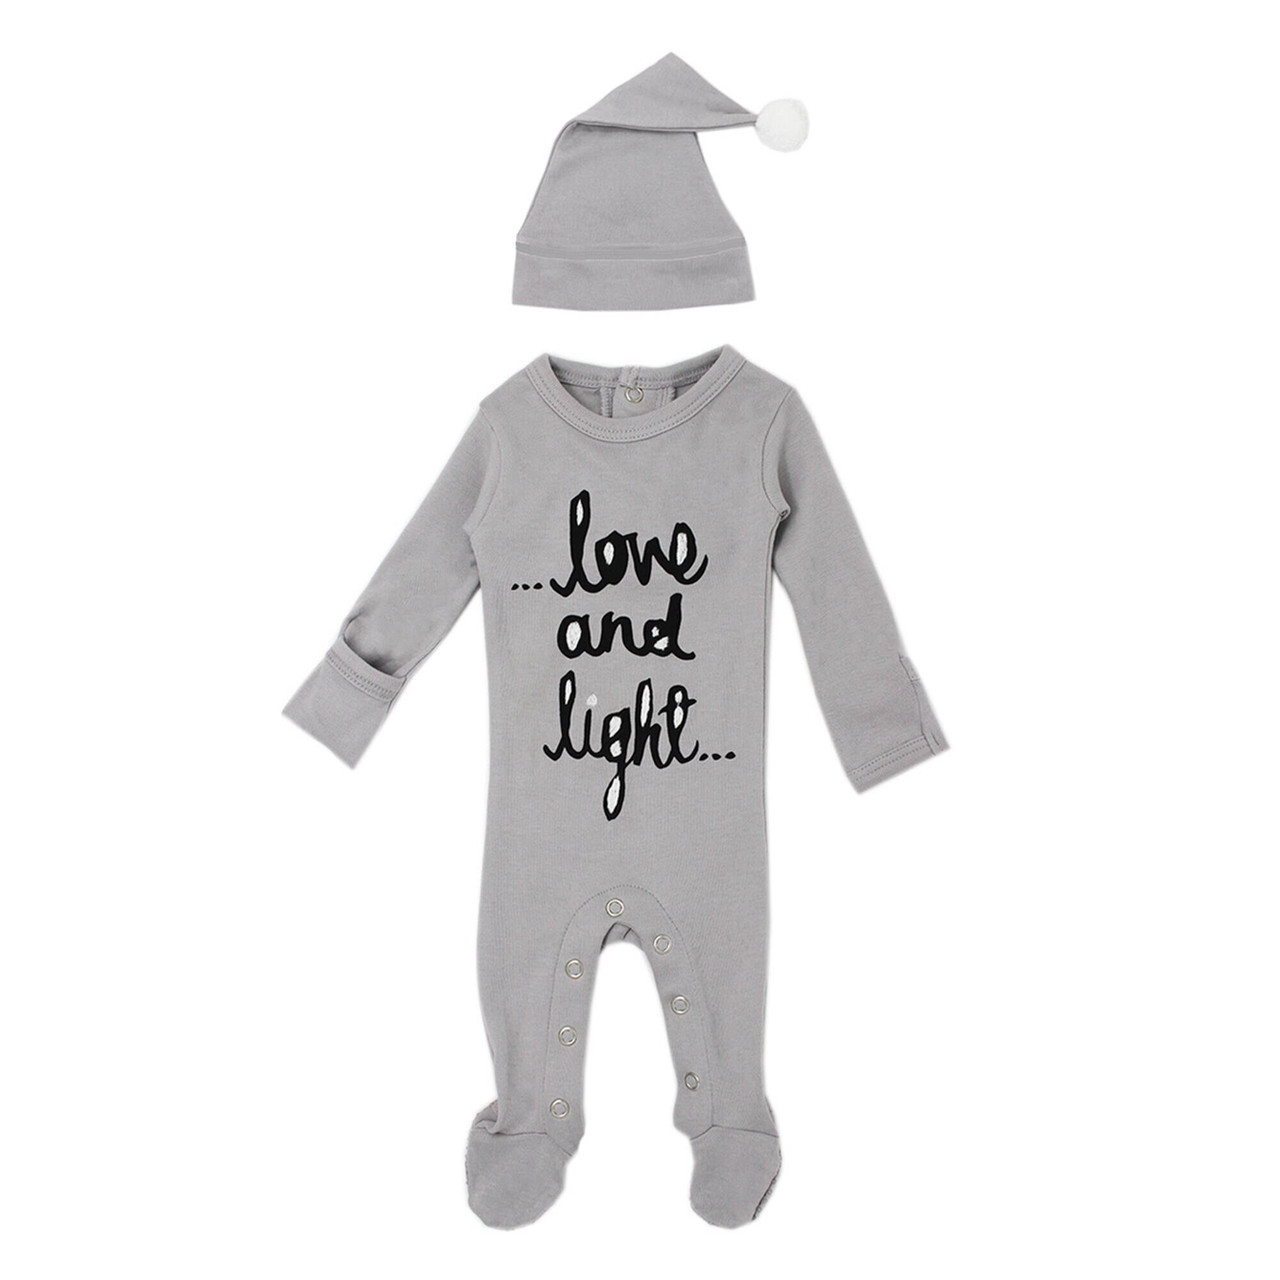 Organic Overall & Cap Set in Gray Love and Light, Flat